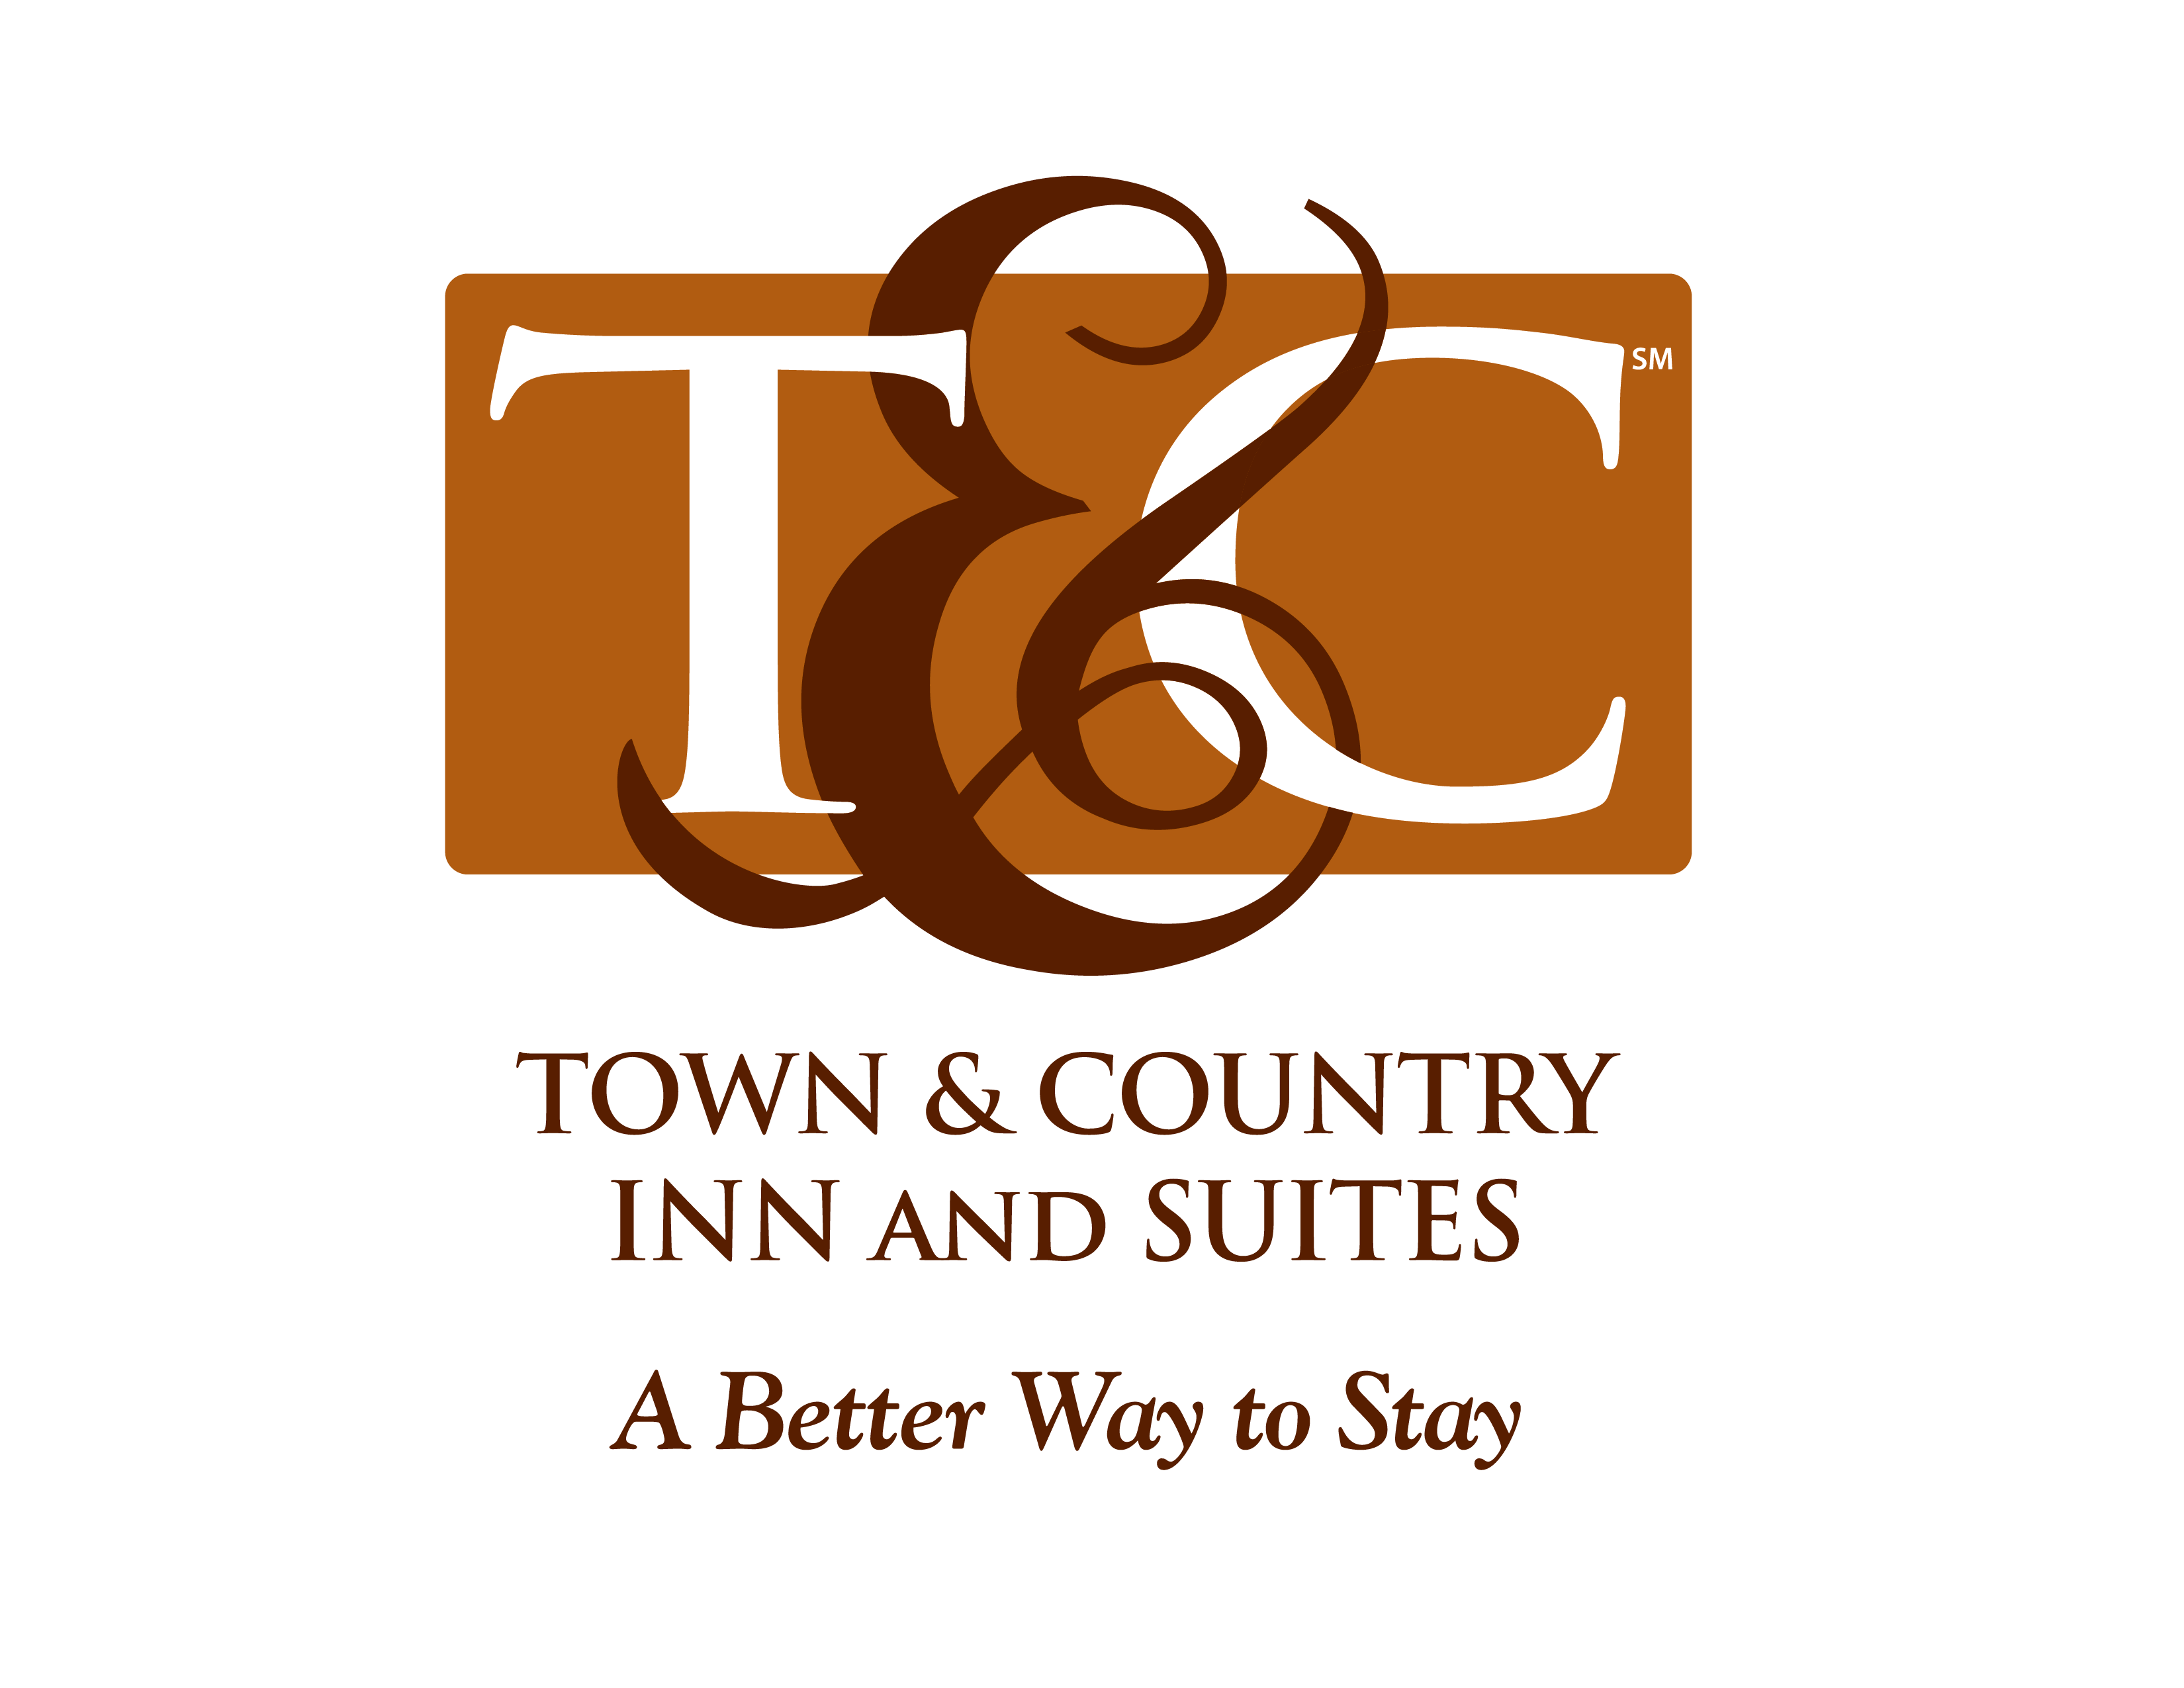 Country inn and suites logo png. Hotel quincy il town